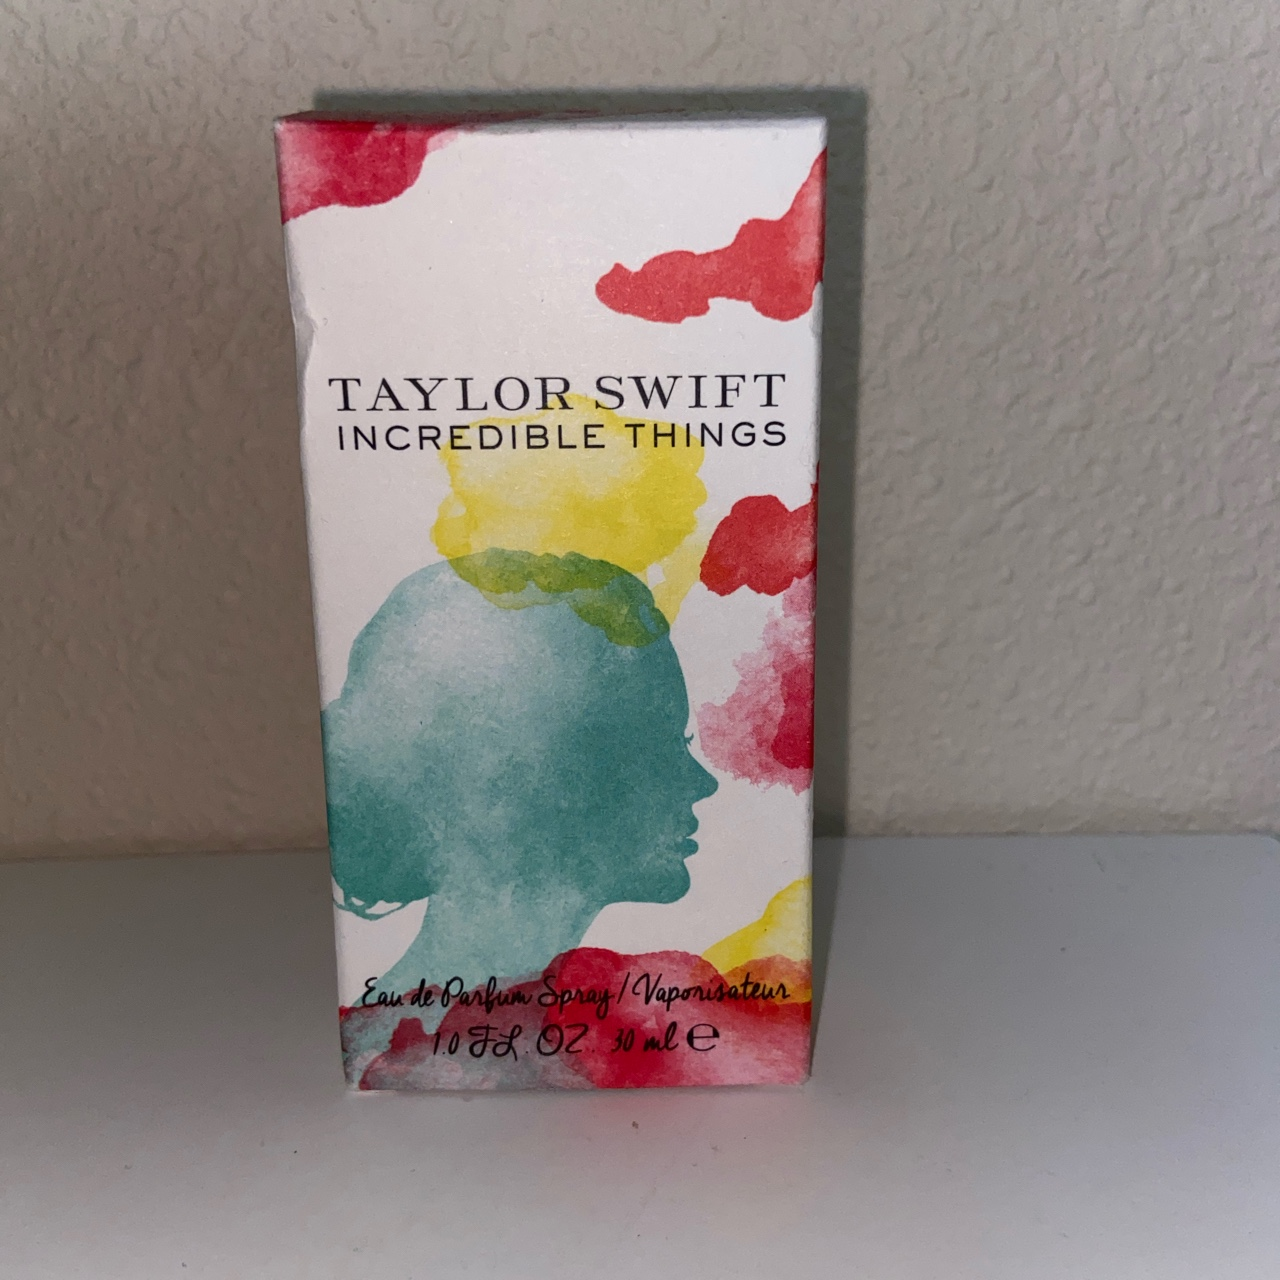 Taylor Swift Incredible Things Perfume Never Depop